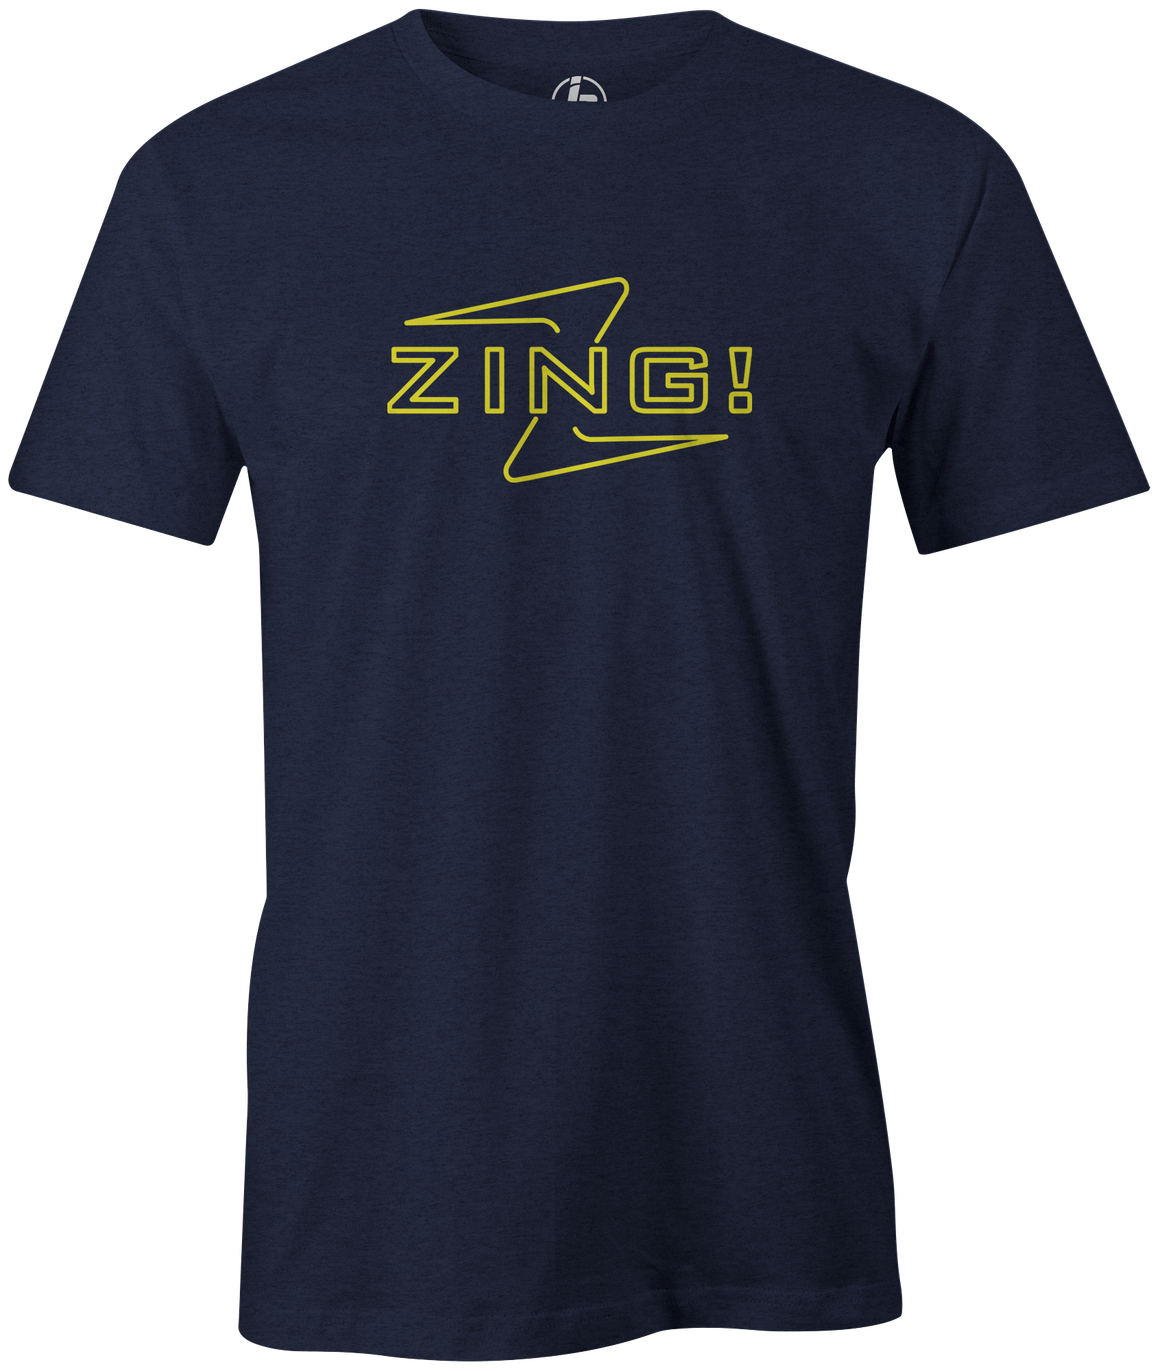 Men's Radical Zing T-Shirt, Navy, bowling, bowling ball, tee, tee shirt, tee-shirt, t shirt, t-shirt, tees, league bowling team shirt, tournament shirt, funny, cool, awesome, brunswick, brand